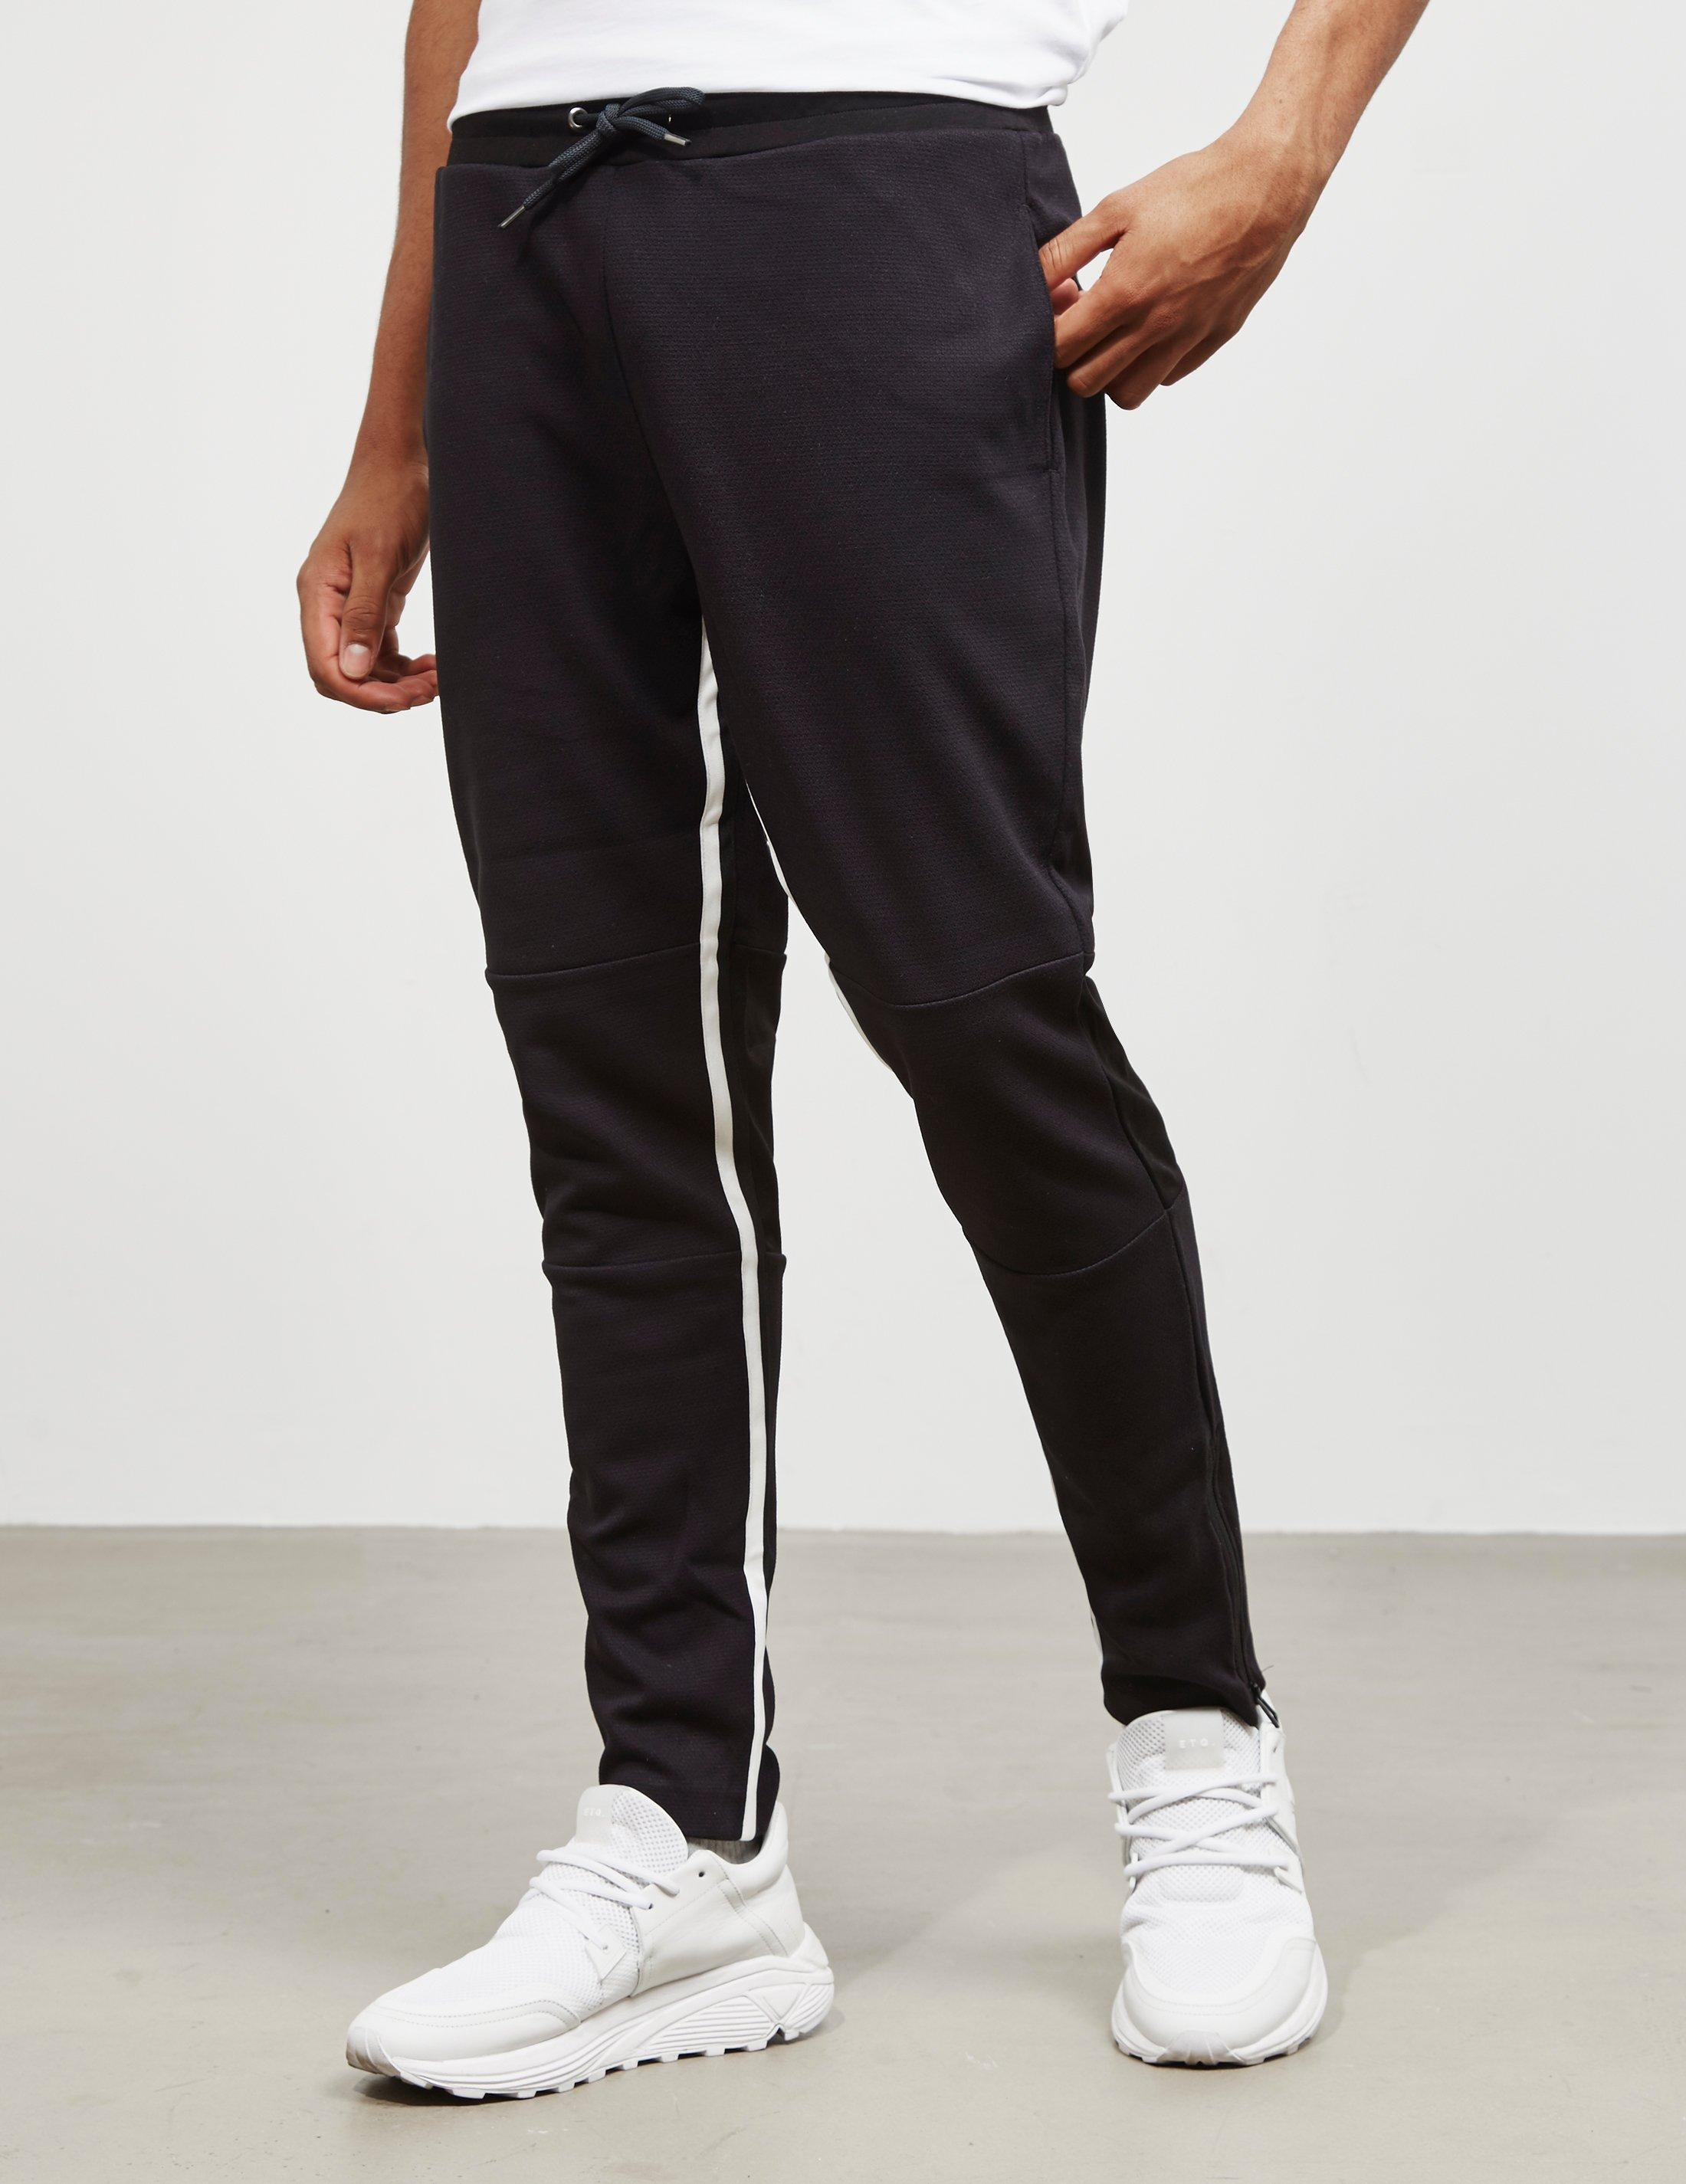 7273f034a5eaf Ps By Paul Smith Mens Tape Track Pants Black in Black for Men - Lyst